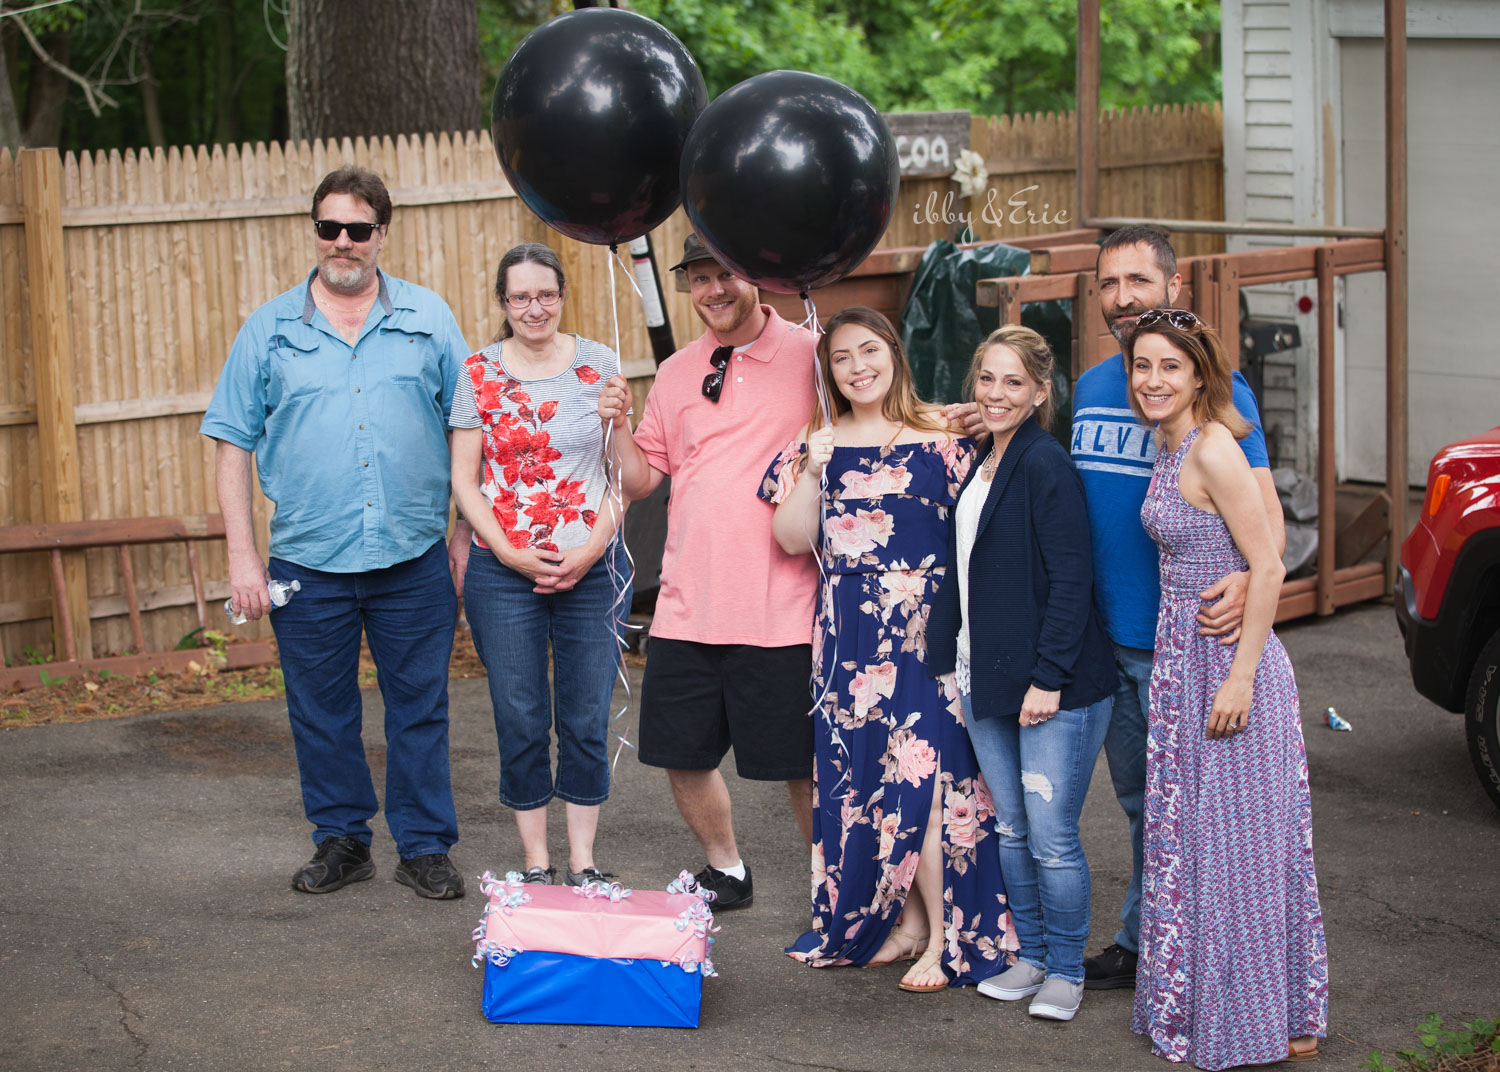 Parents to be pose for a family photo with big black balloons before revealing the gender of their baby.